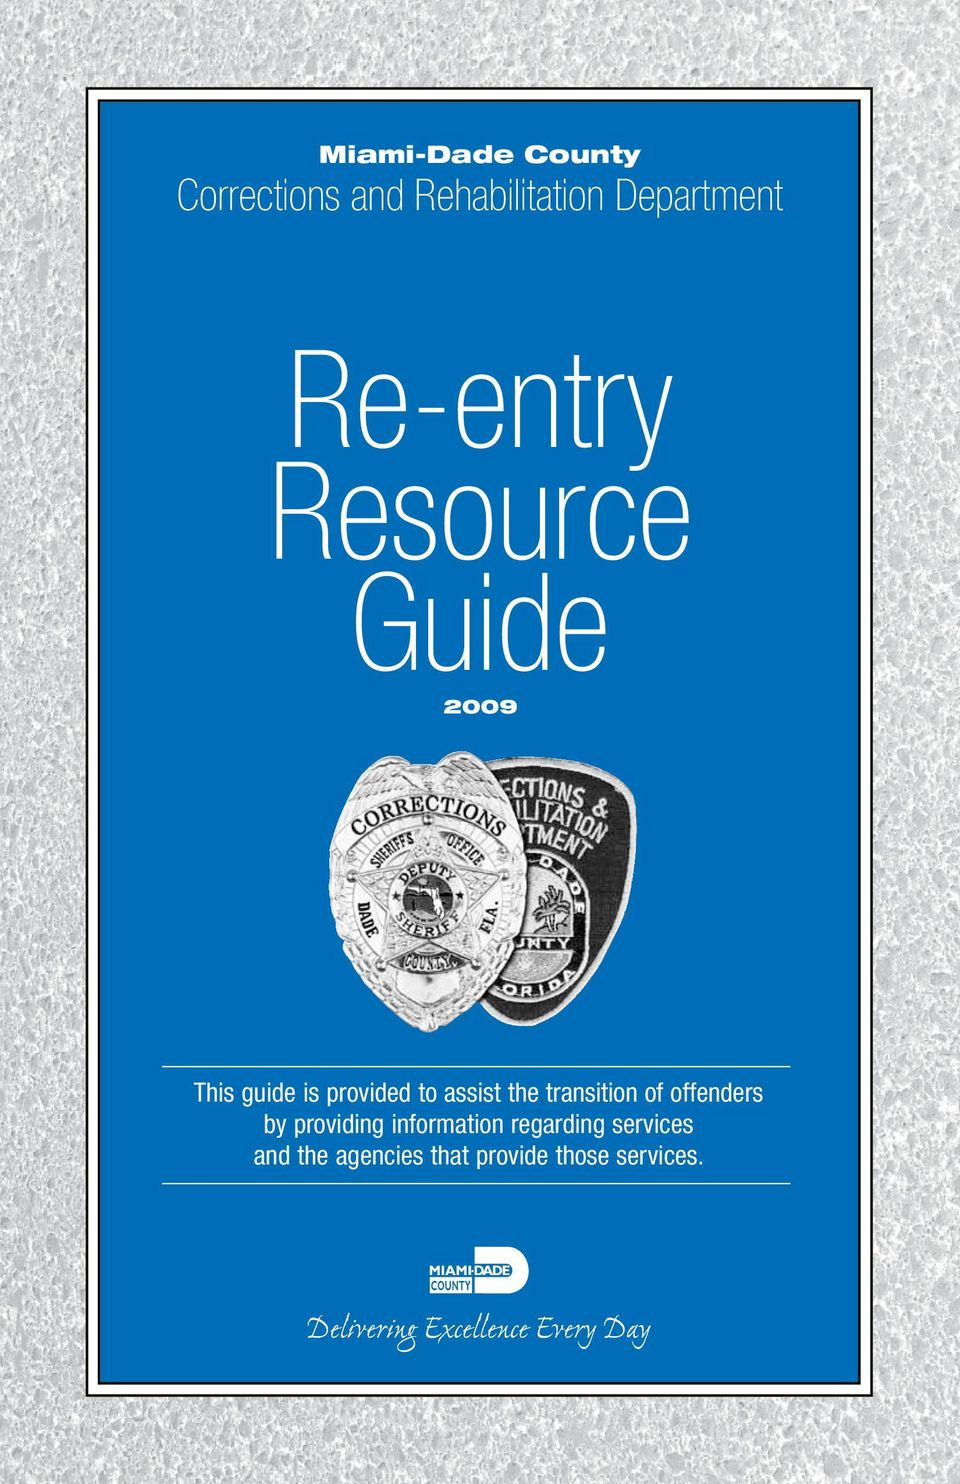 Guide 2009 This guide is provided to assist the transition of offenders by